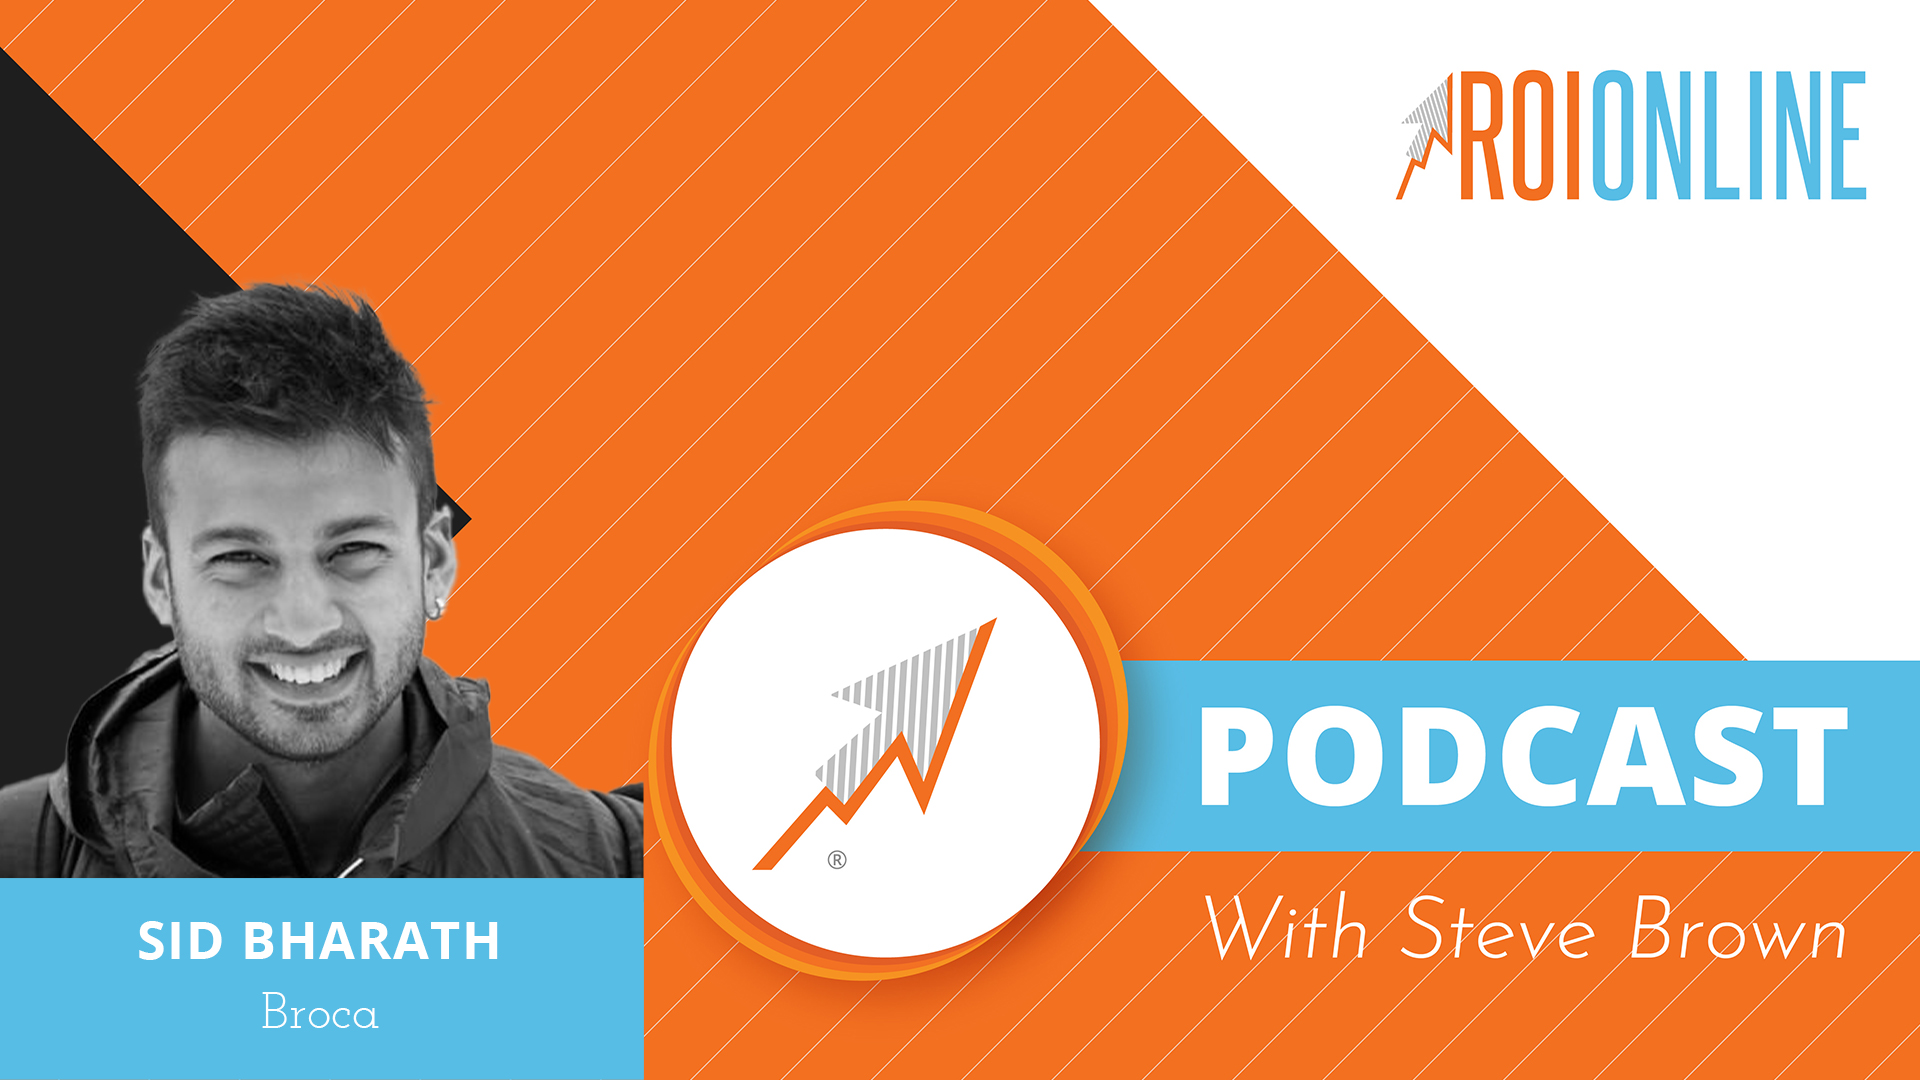 ROI Online Podcast thumbnail graphic Sid Bharath